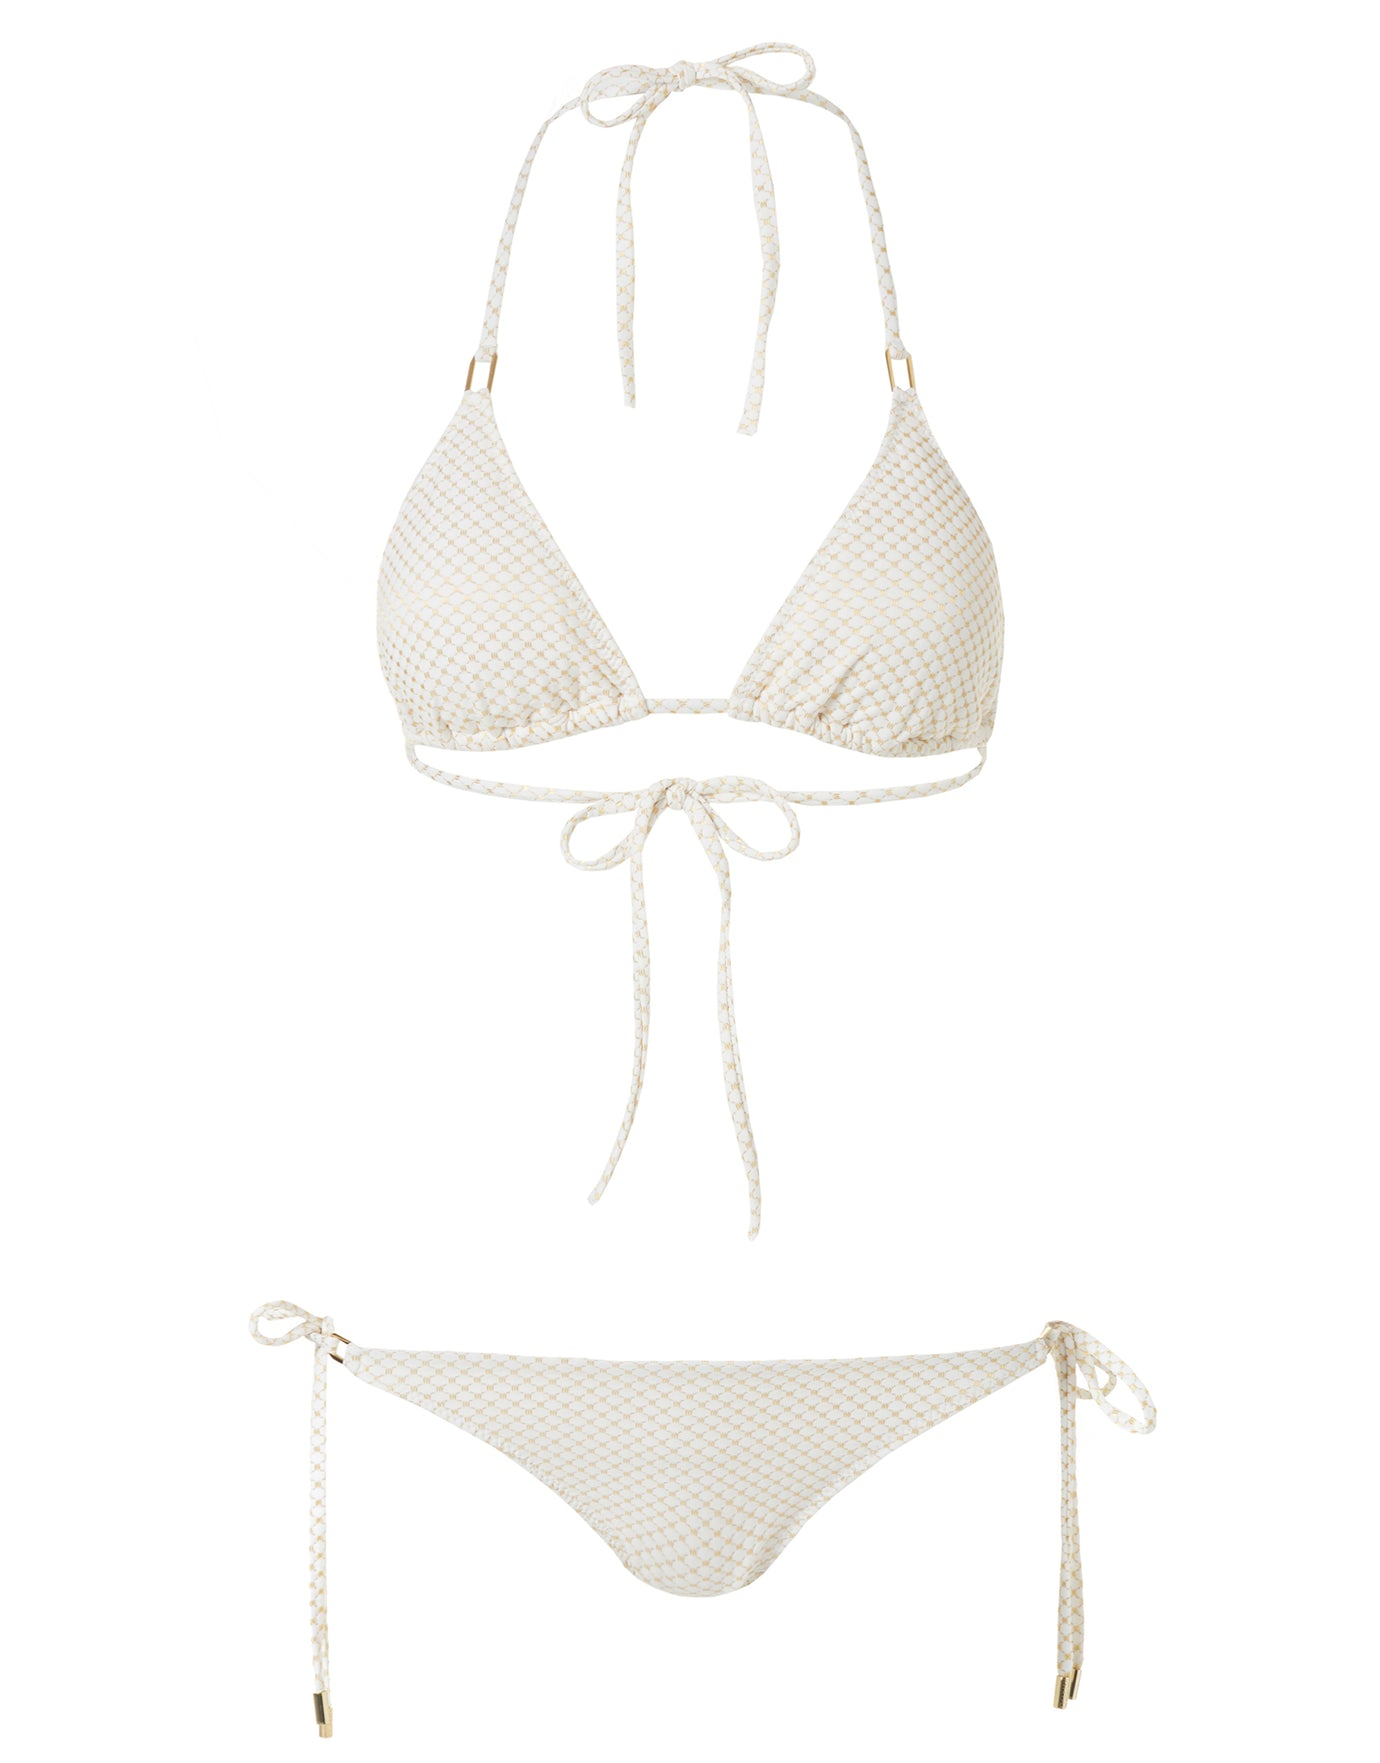 Melissa Odabash Cancun Classic Triangle Bikini Bottom - Hexagon